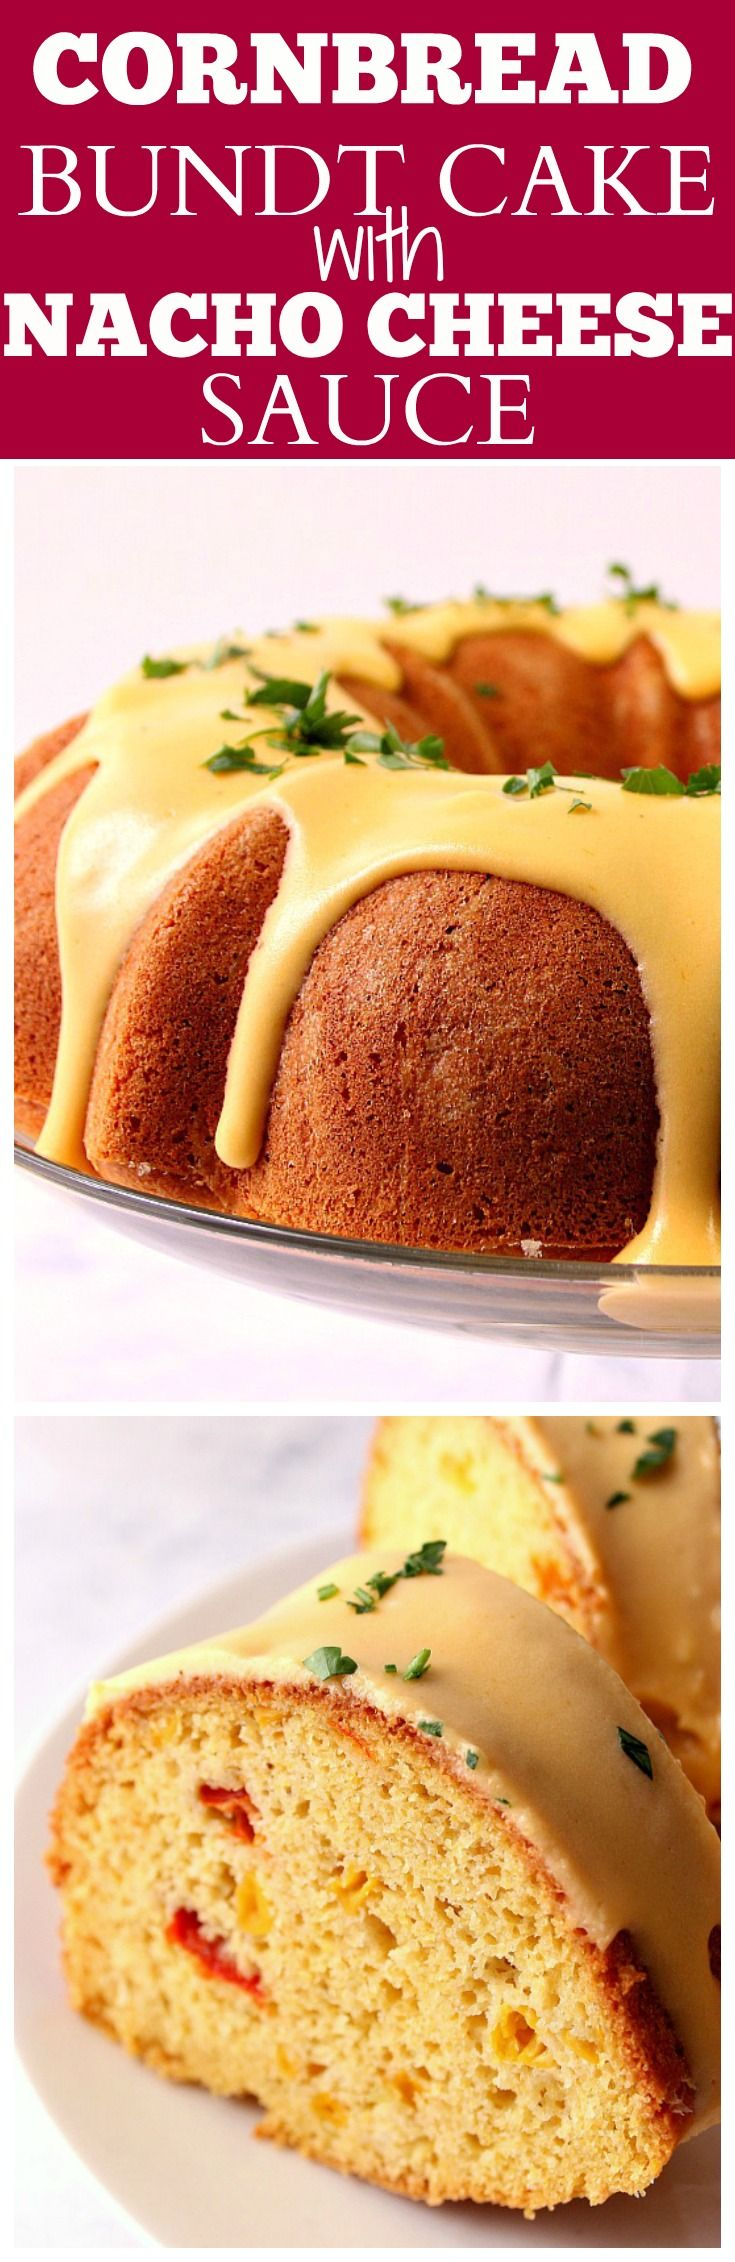 Cornbread Bundt Cake with Nacho Cheese Sauce Recipe - savory cornbread with peppers and corn baked in a bundt cake and glazed with nacho cheese sauce. Completely unexpected side dish!